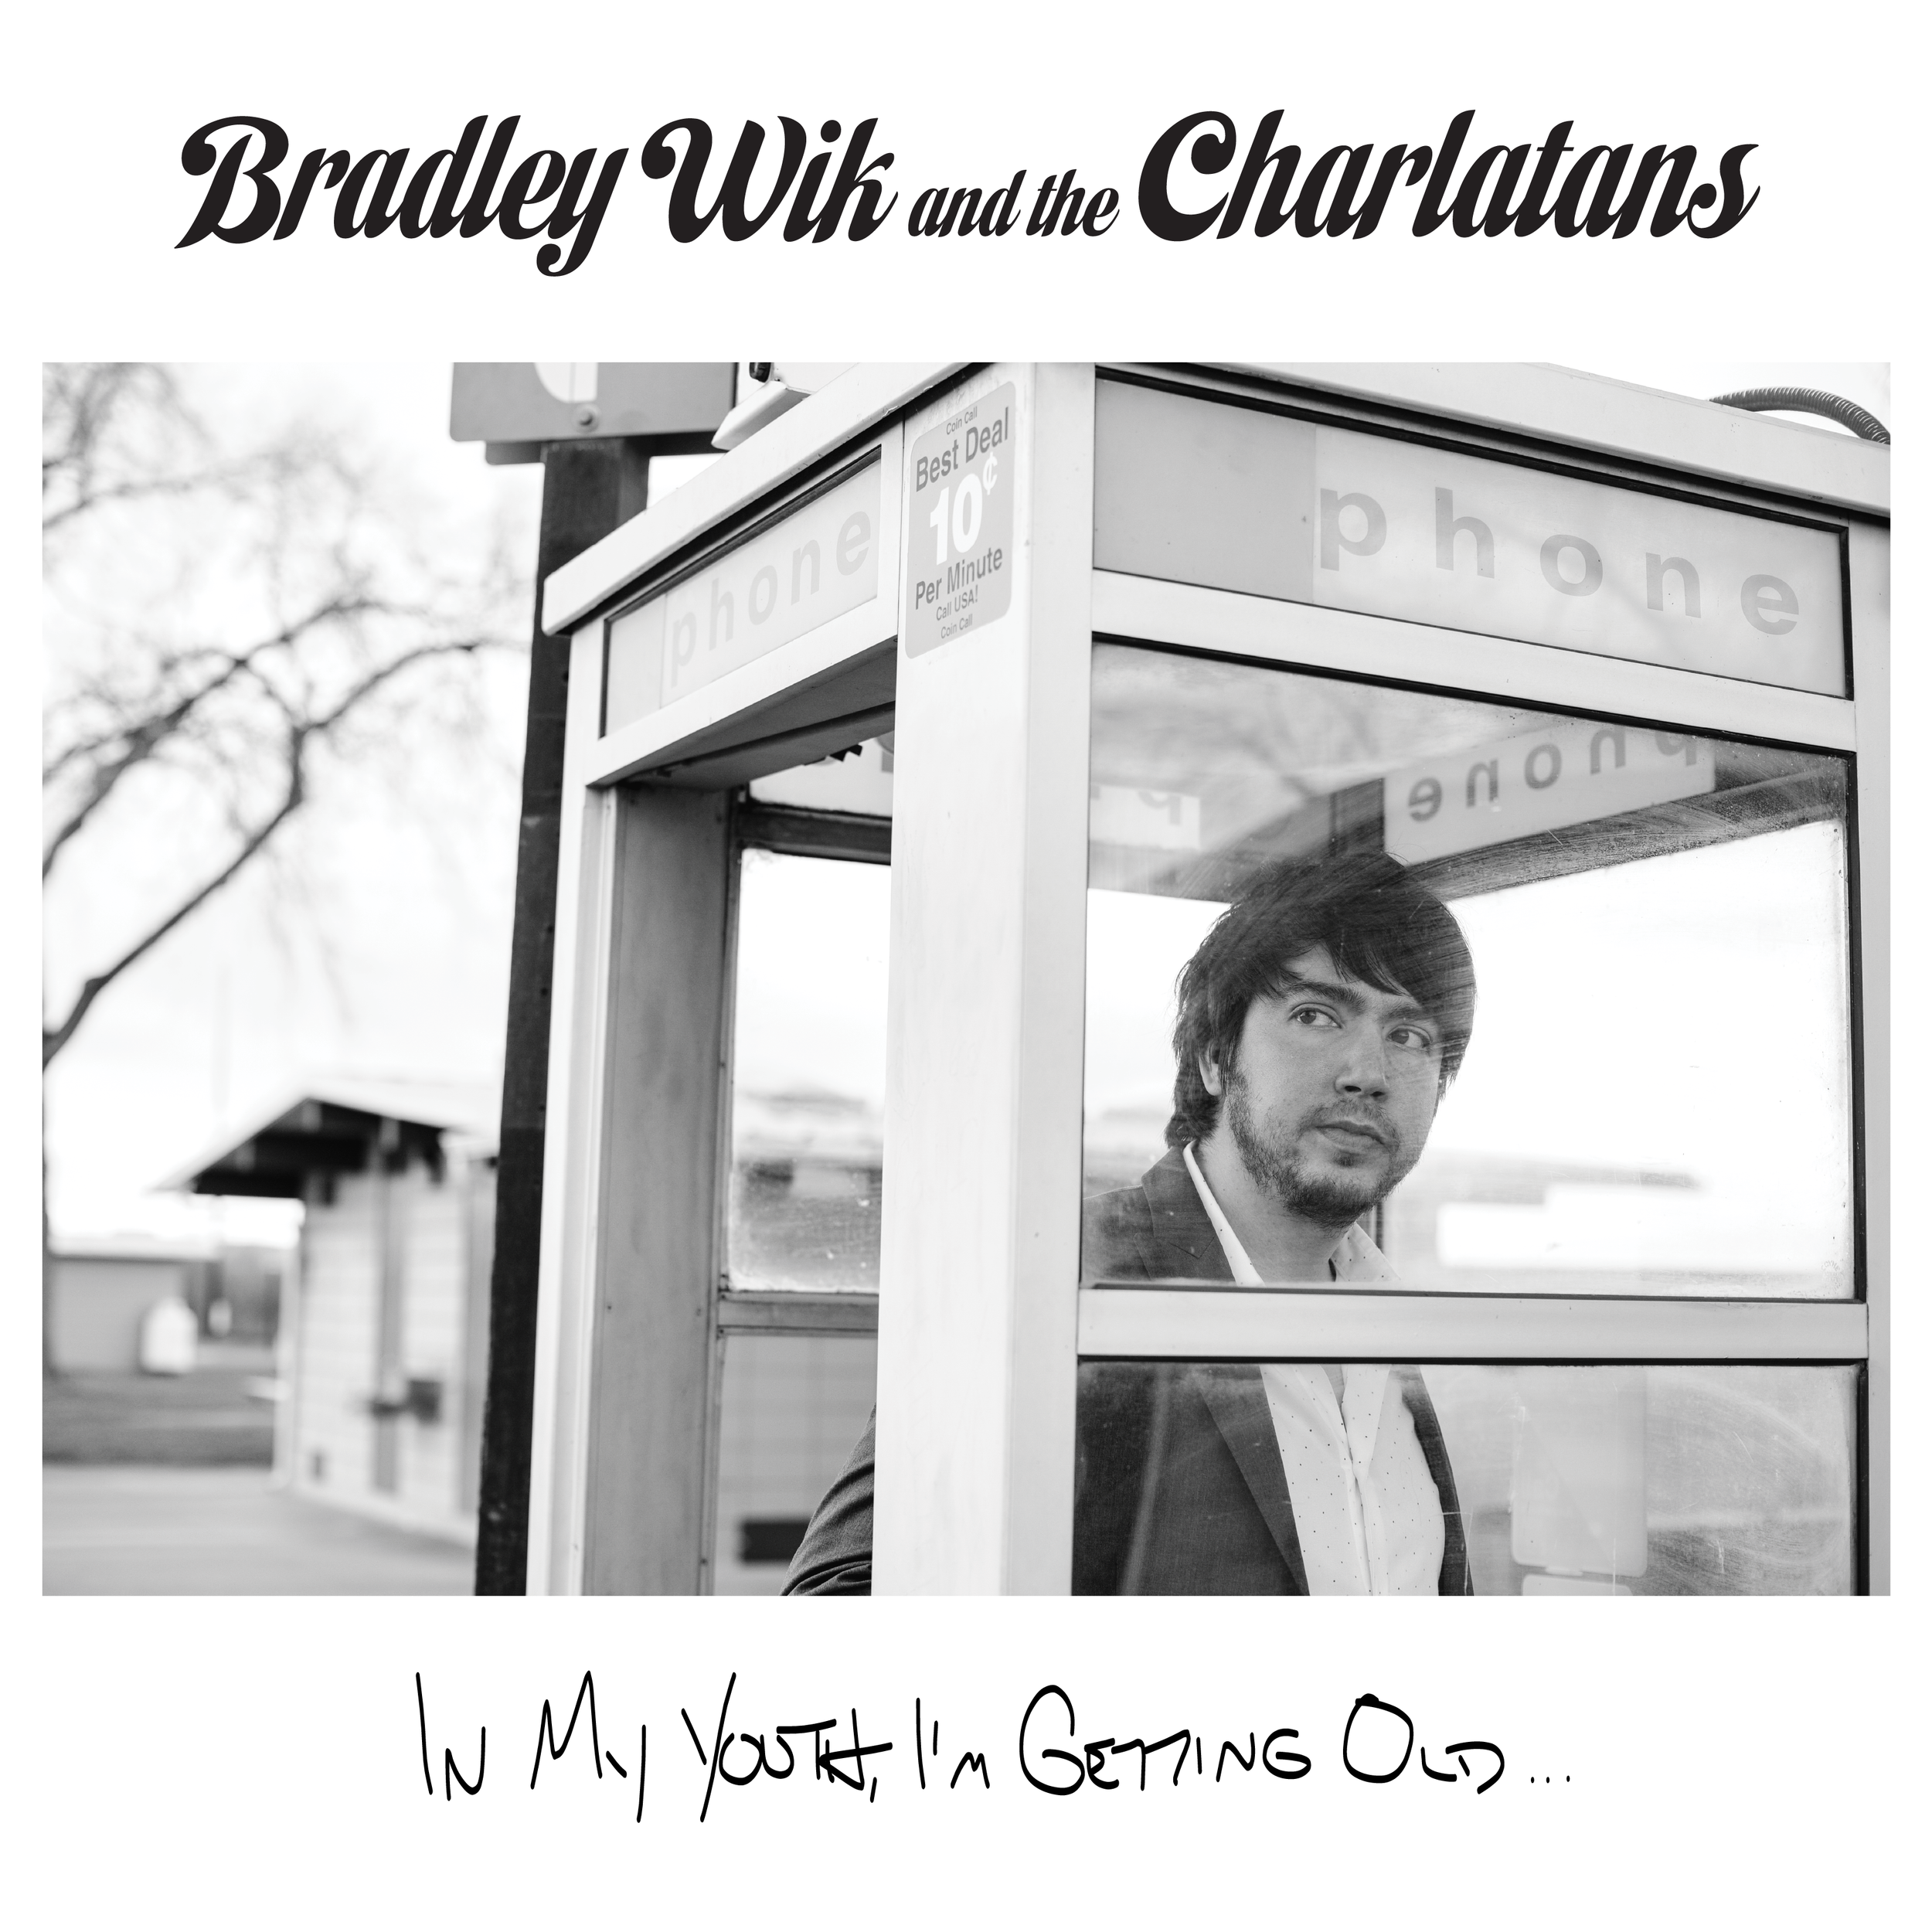 """New Album, """"In My Youth, I'm Getting Old..."""" from Bradley Wik and the Charlatans - a new kind of Rock N Roll"""